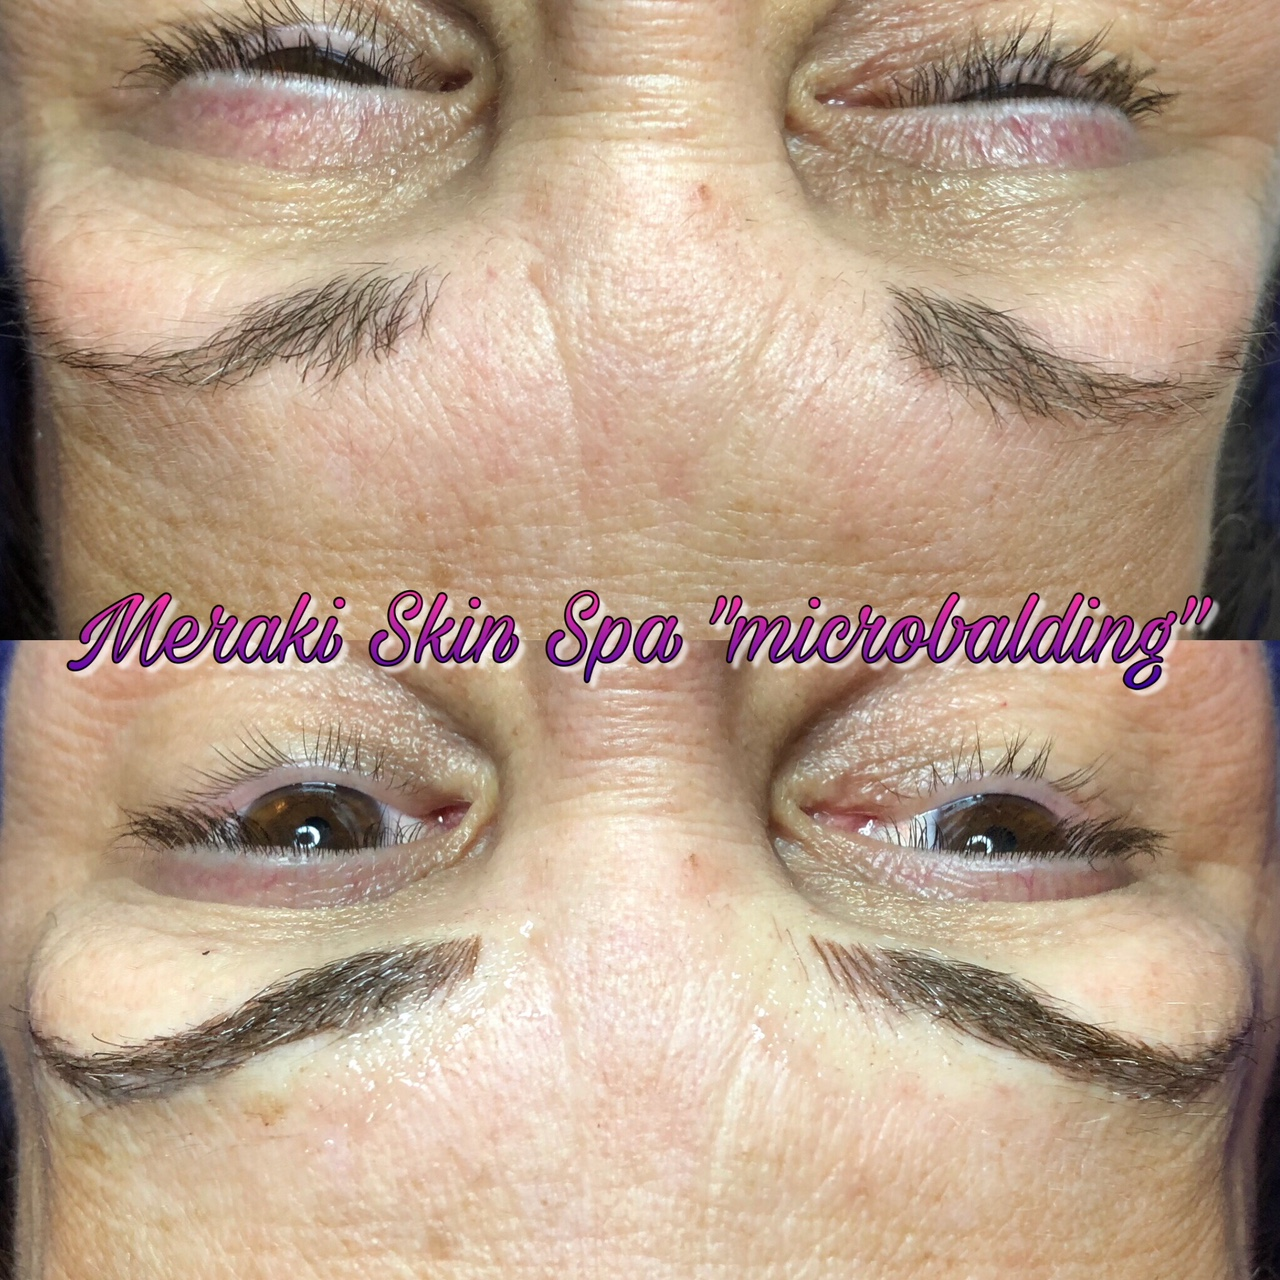 alt text meridian Idaho , microblading, permanent tattooed eyebrows